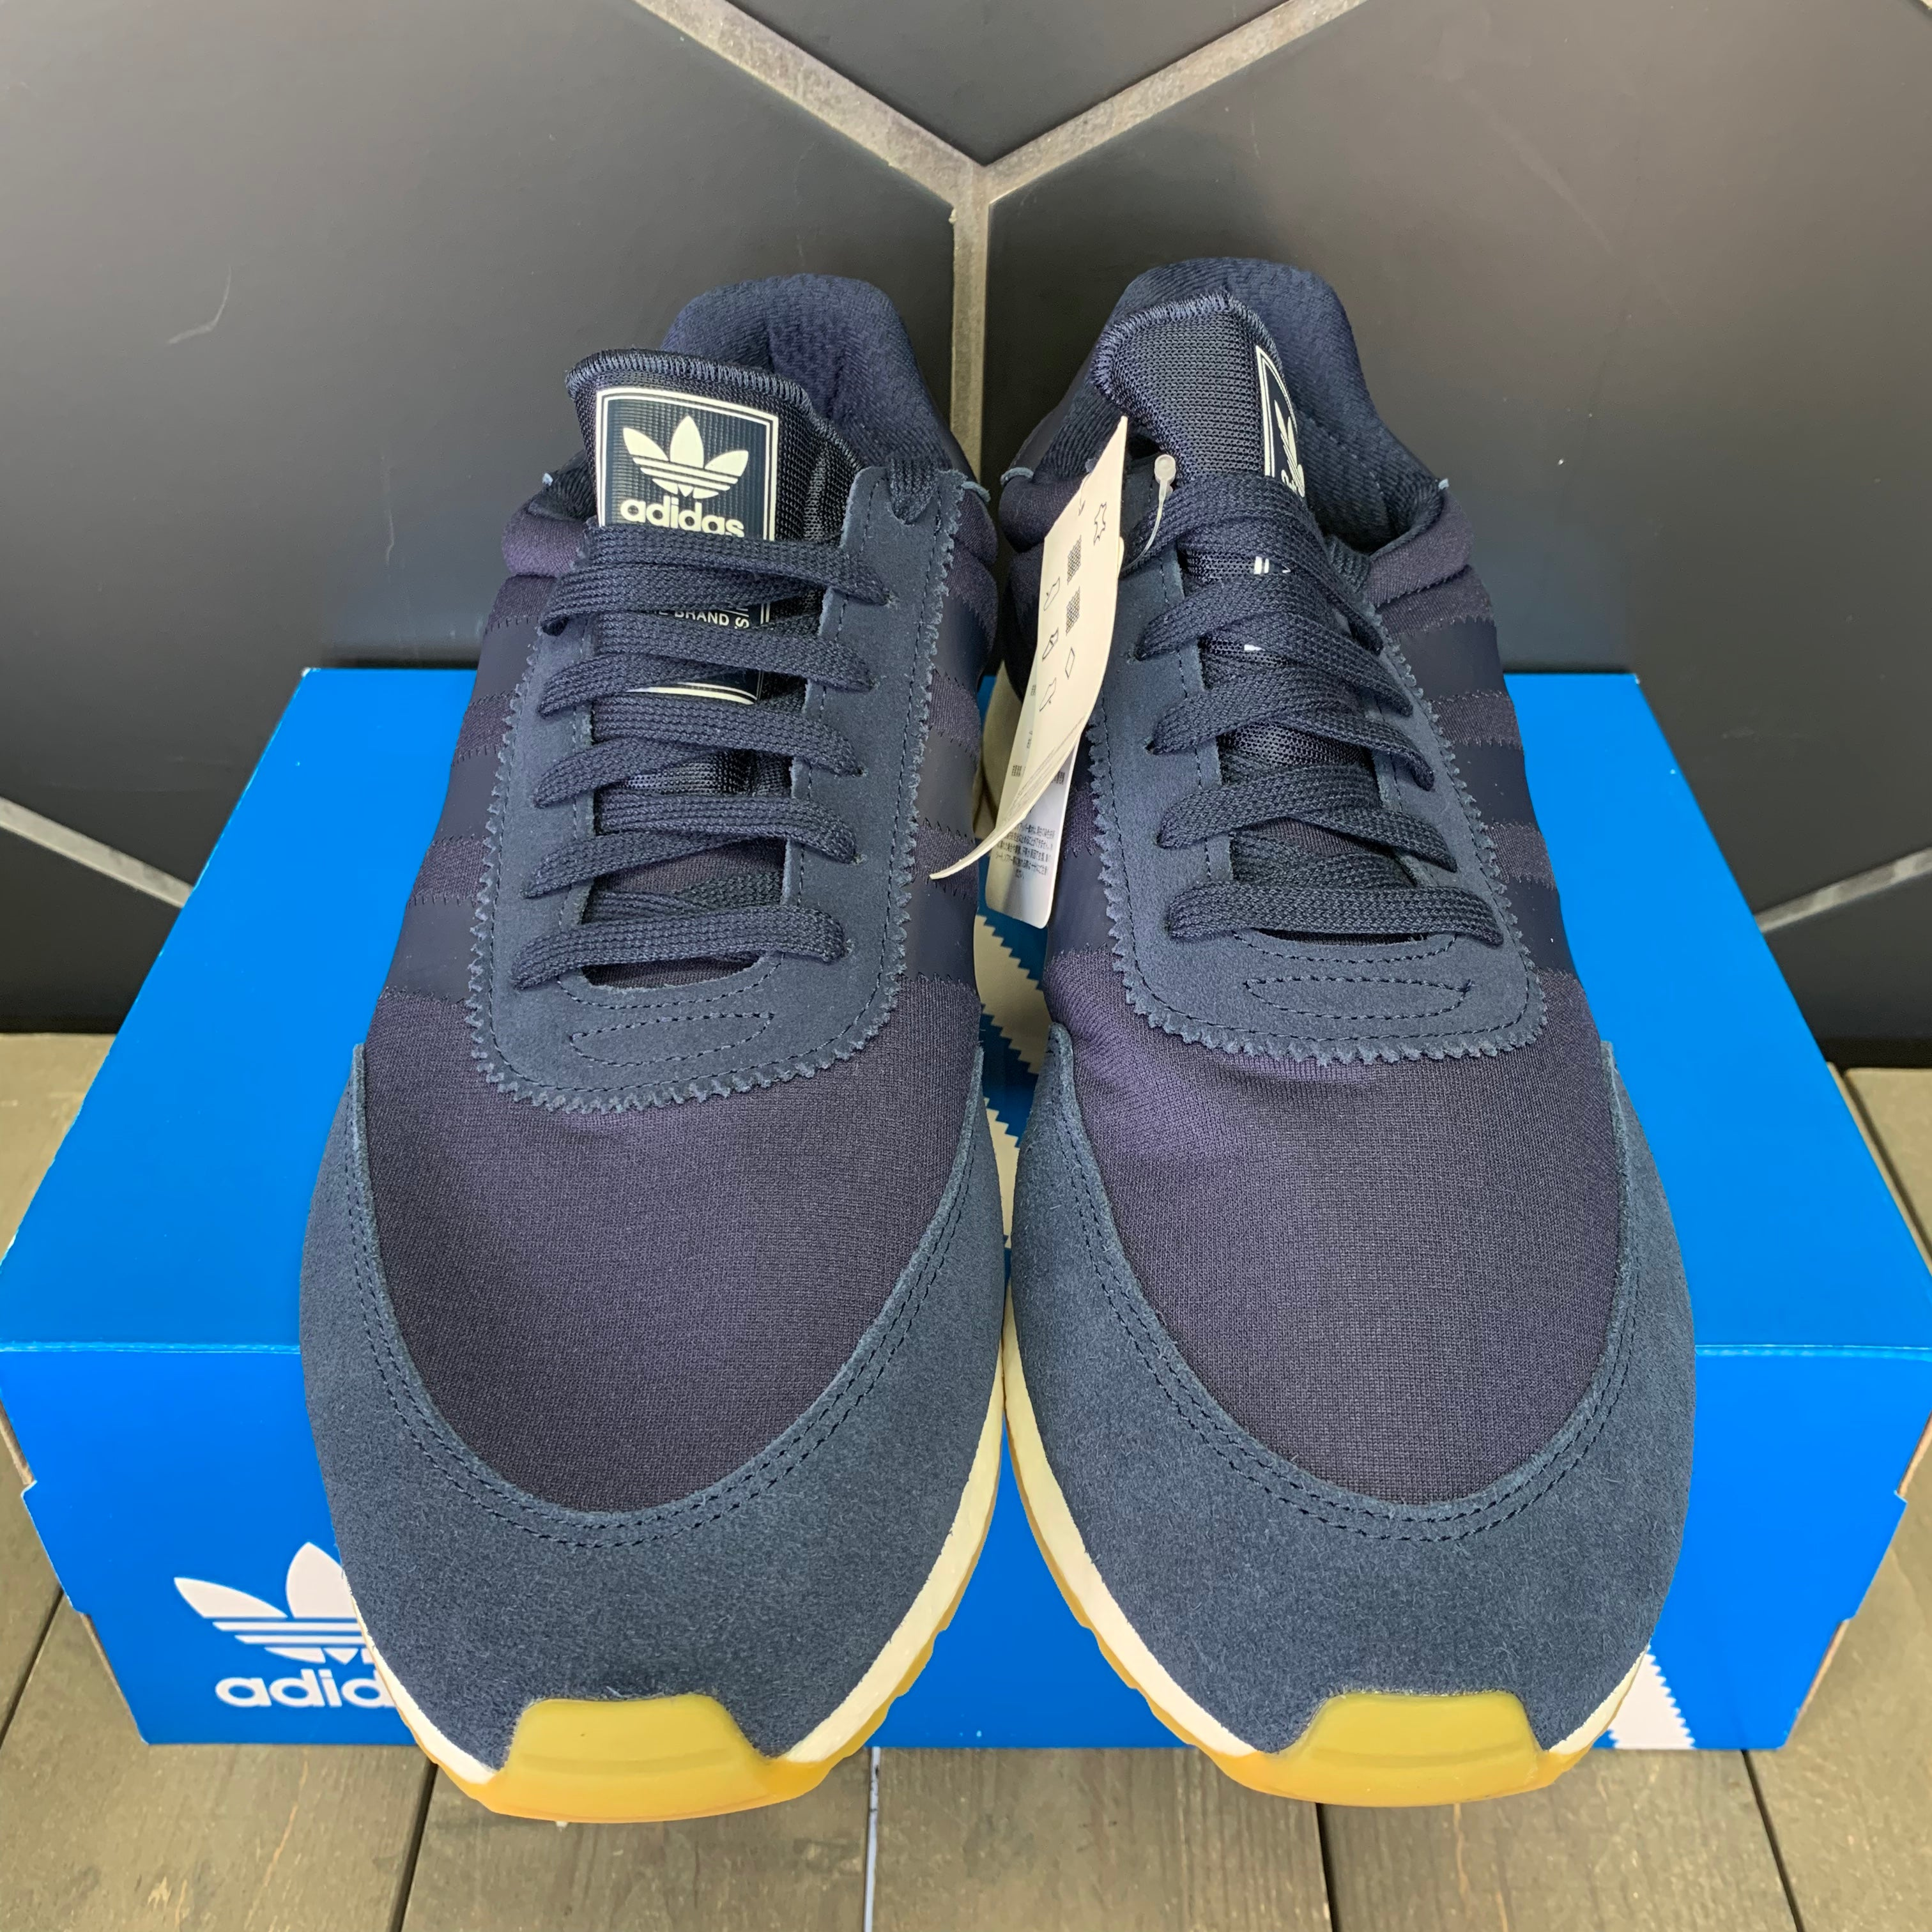 New W/ Box! Adidas I-5923 Navy and White Gum Sneakers (Multiple Sizes)